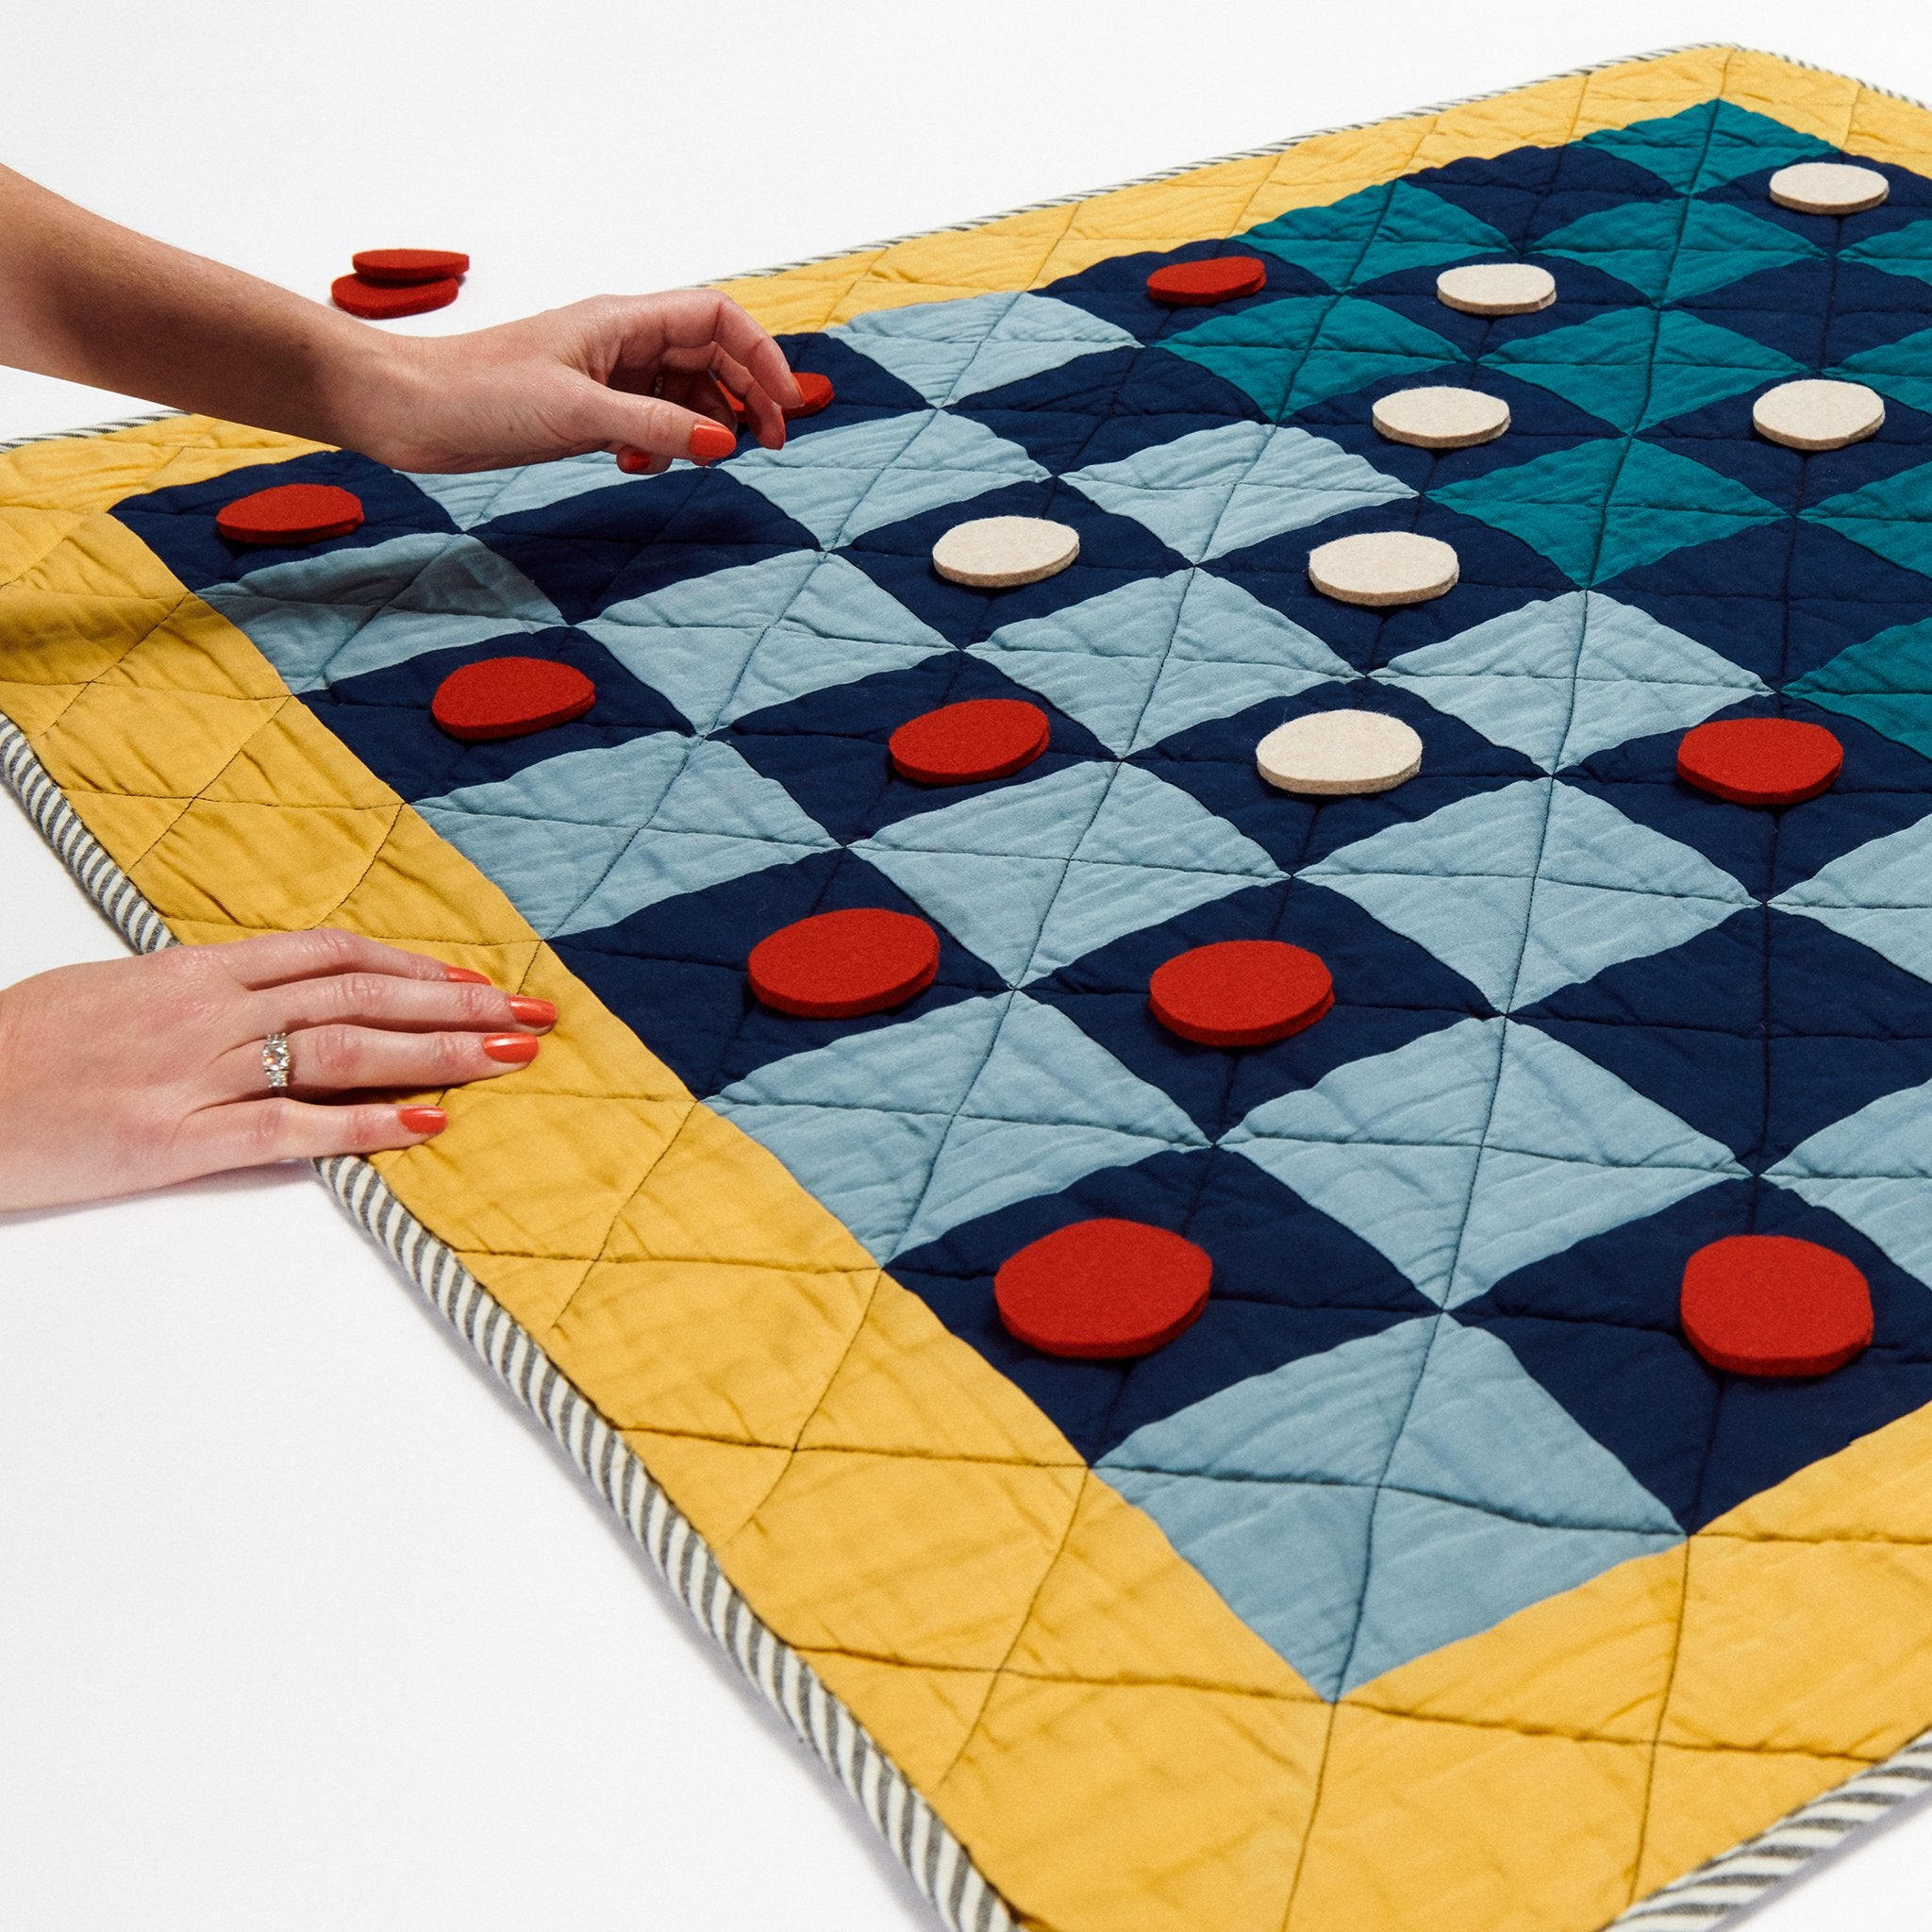 Checkers 36X36 Game Quilts